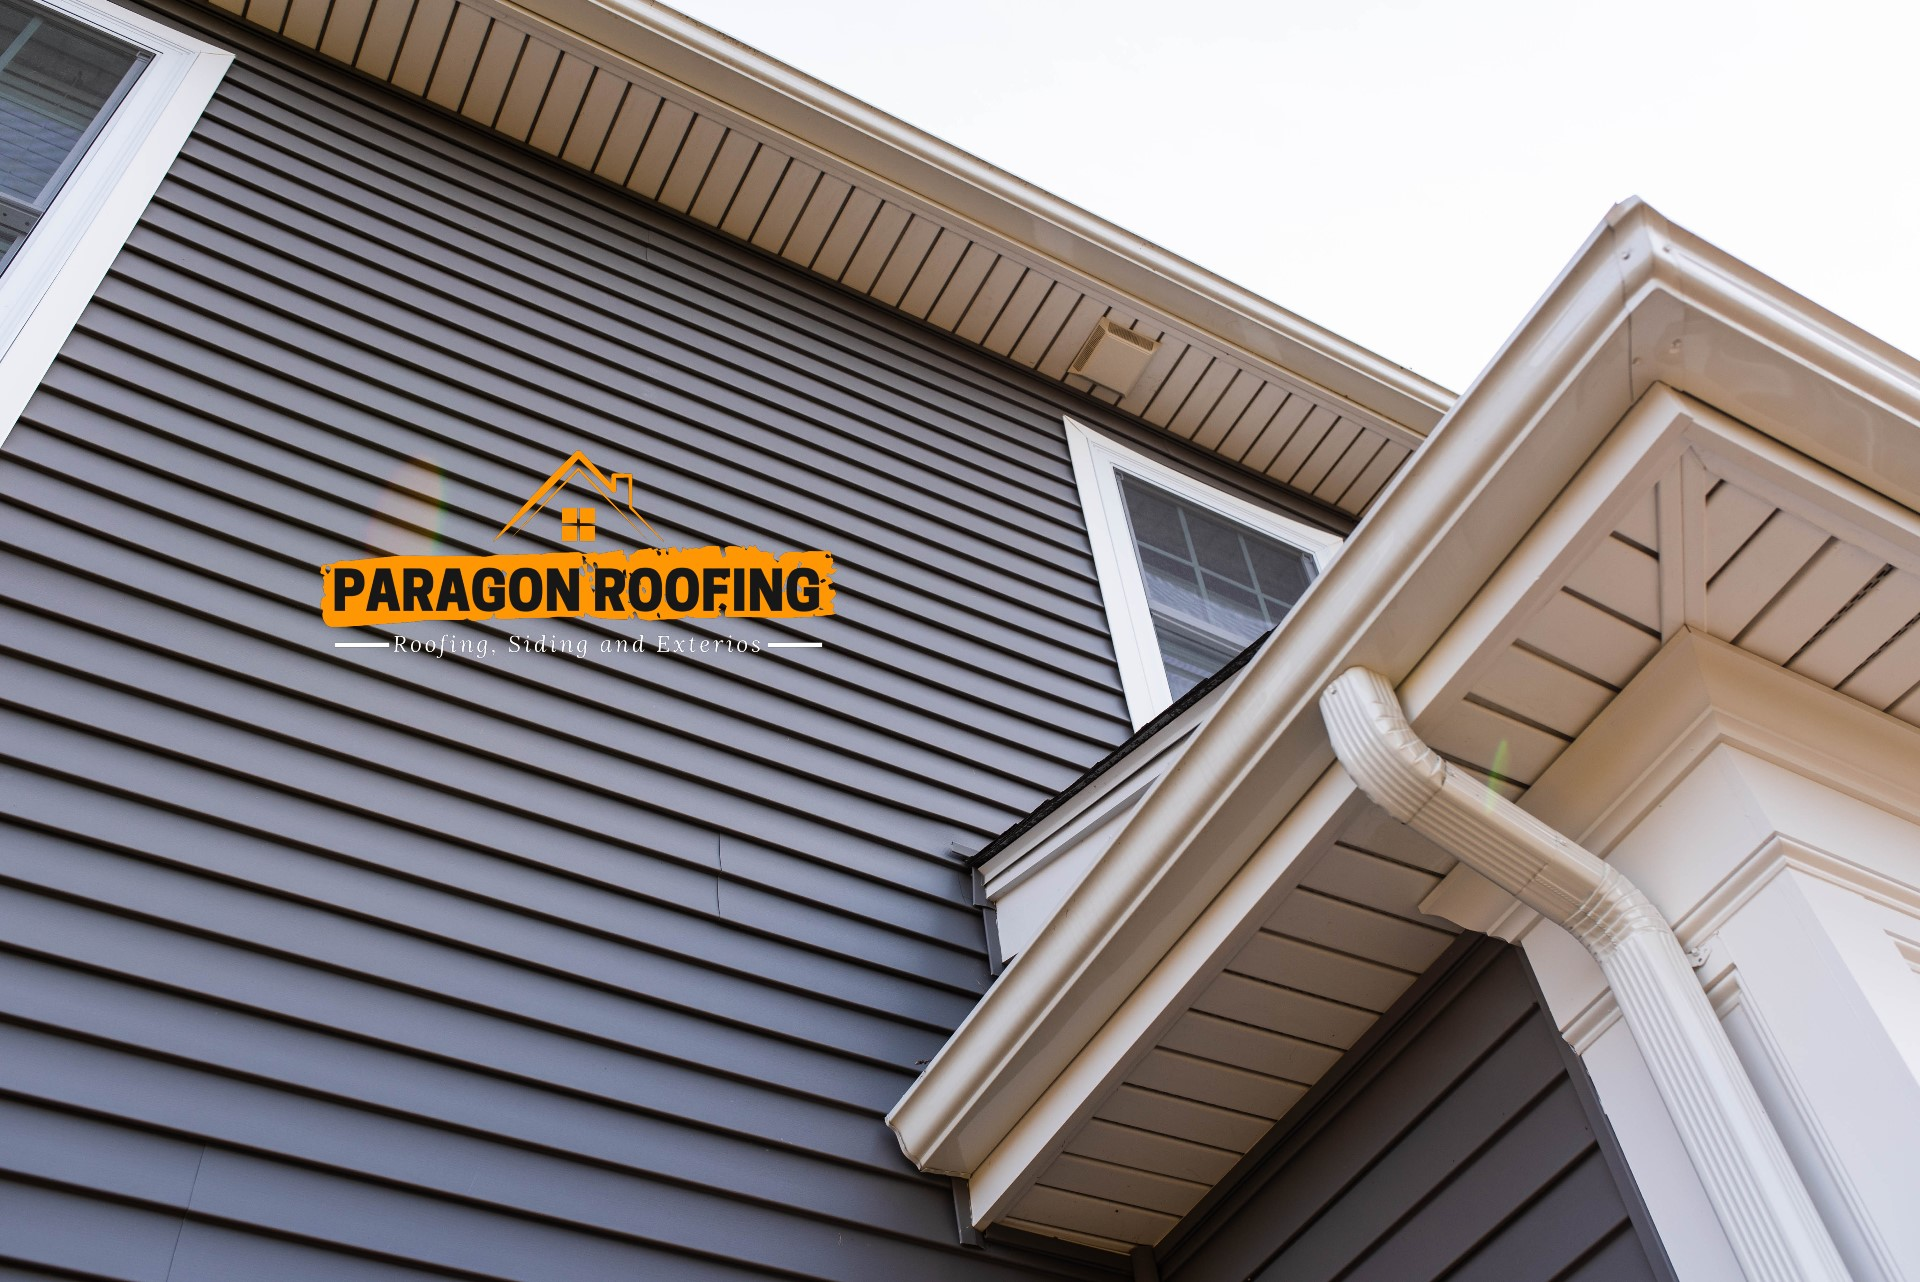 Paragon Roofing - Residential Gutters Repair Services